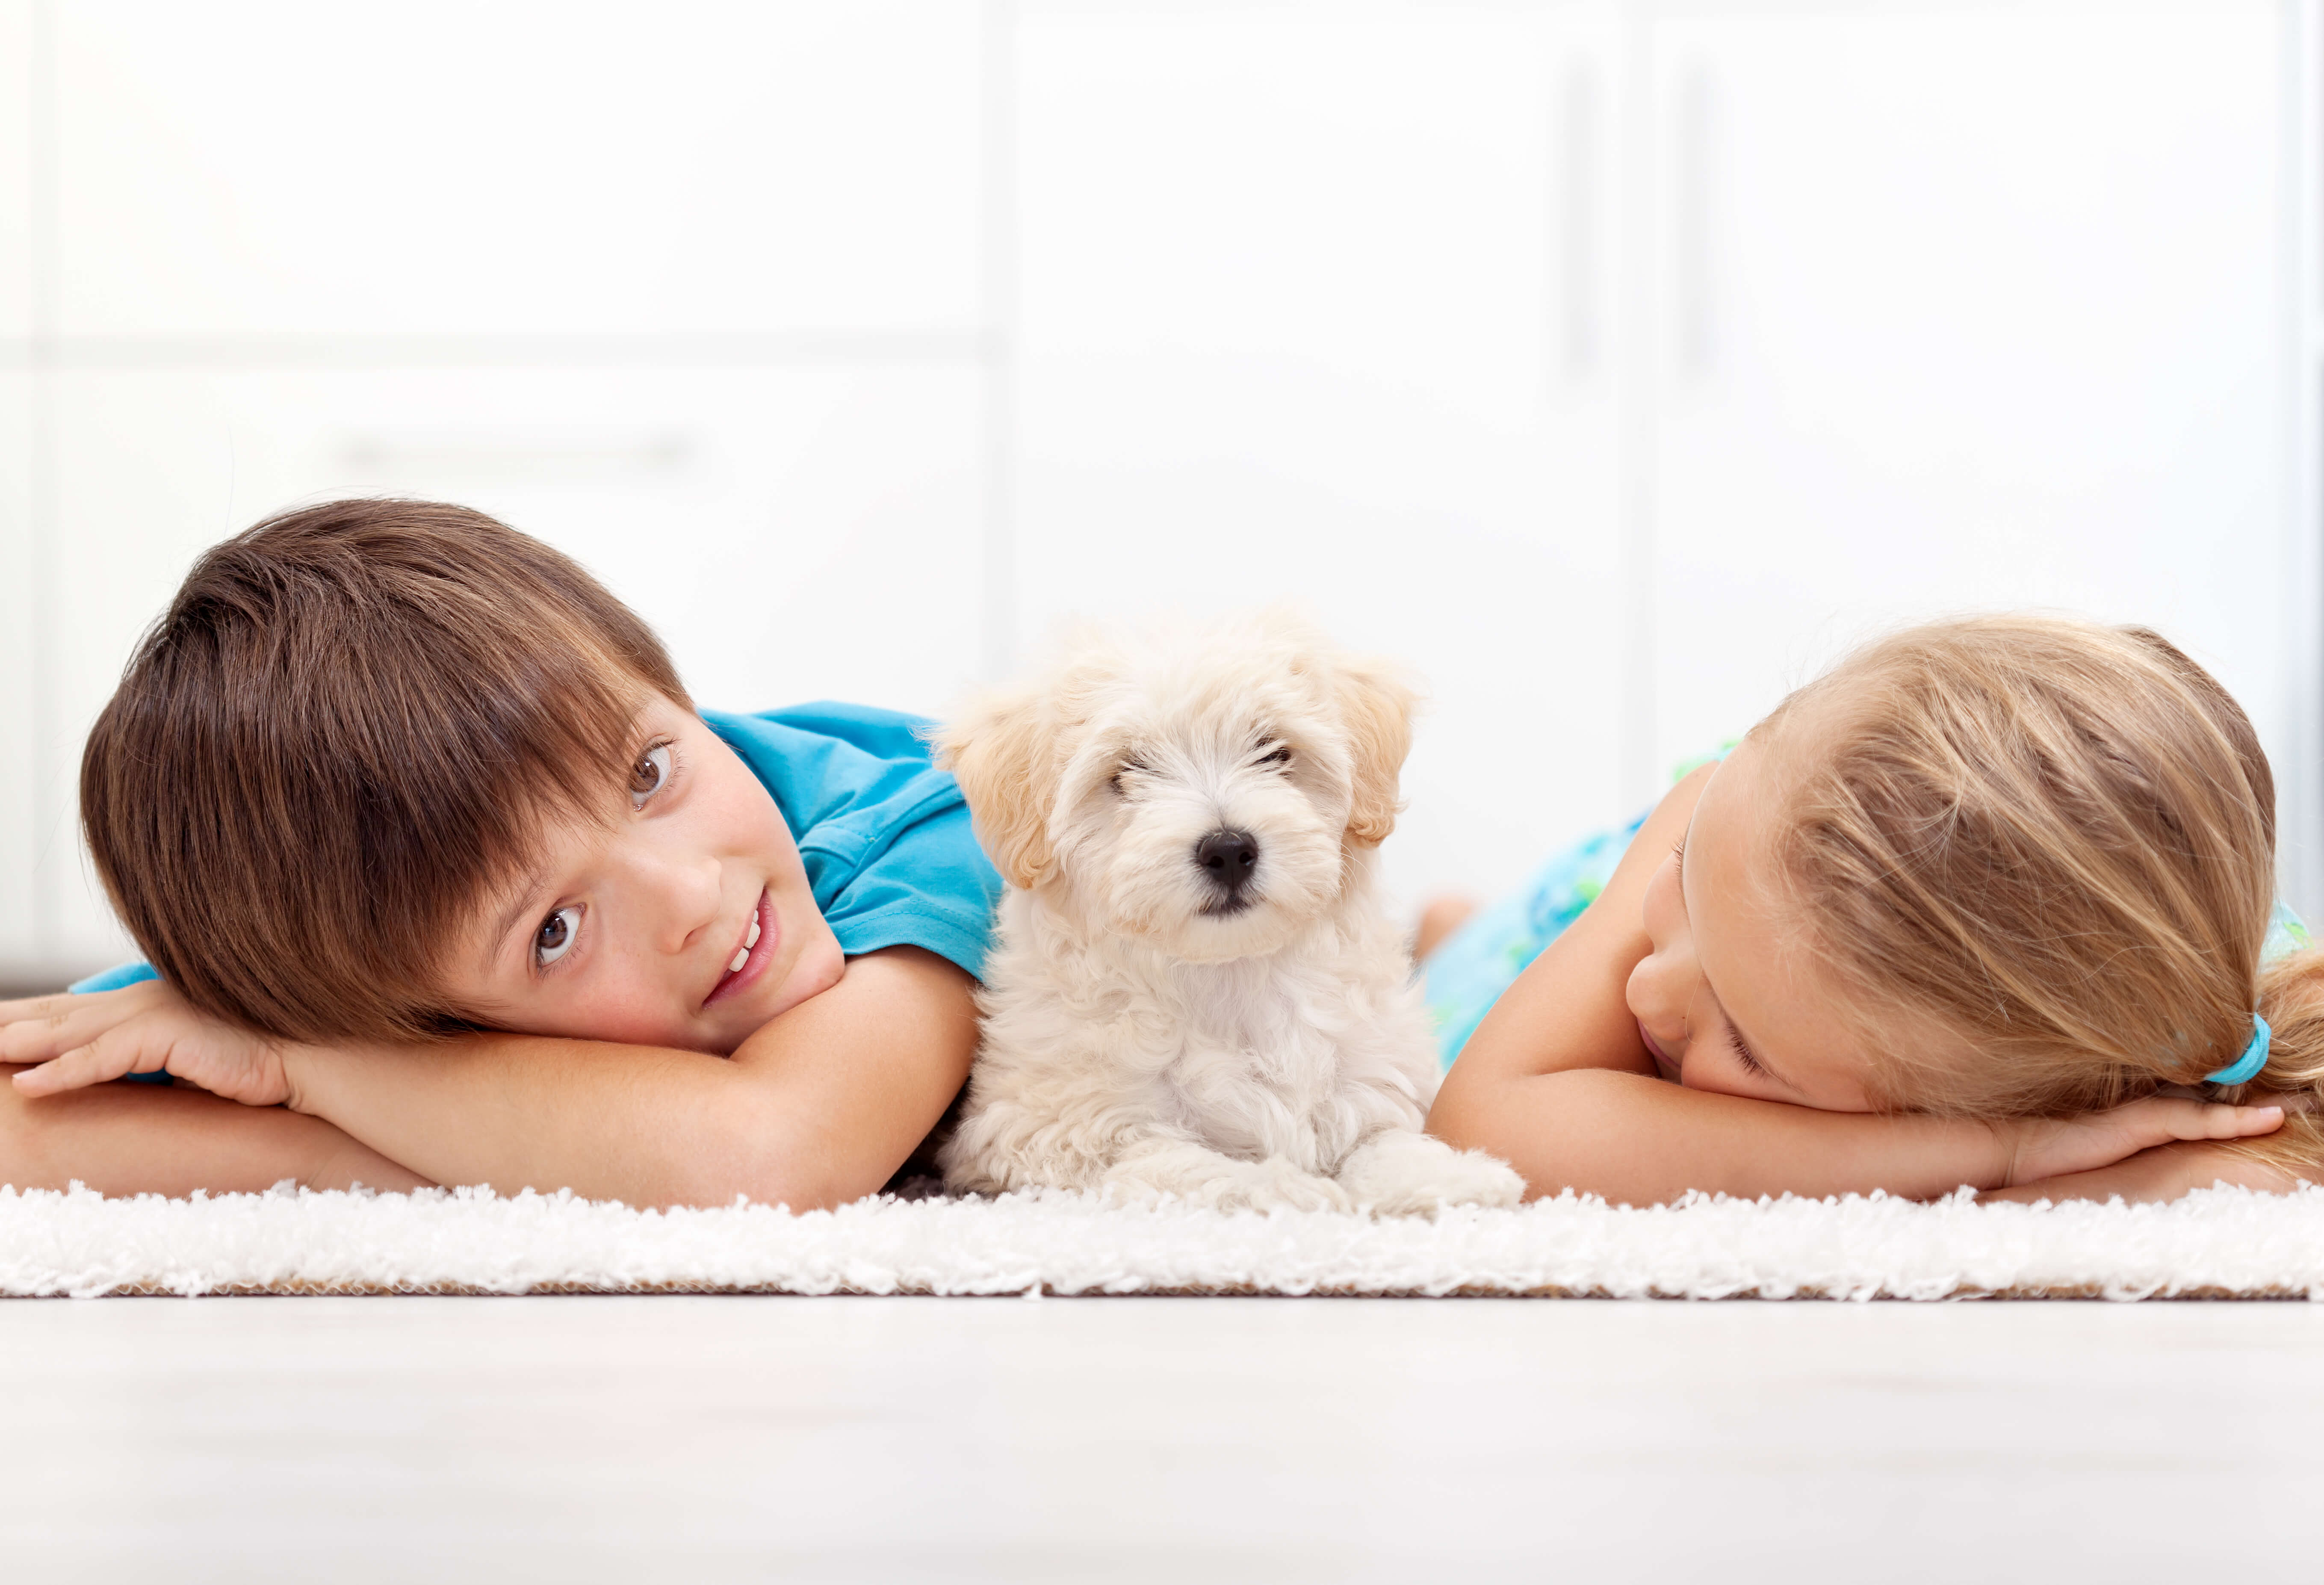 Two kids with a dog